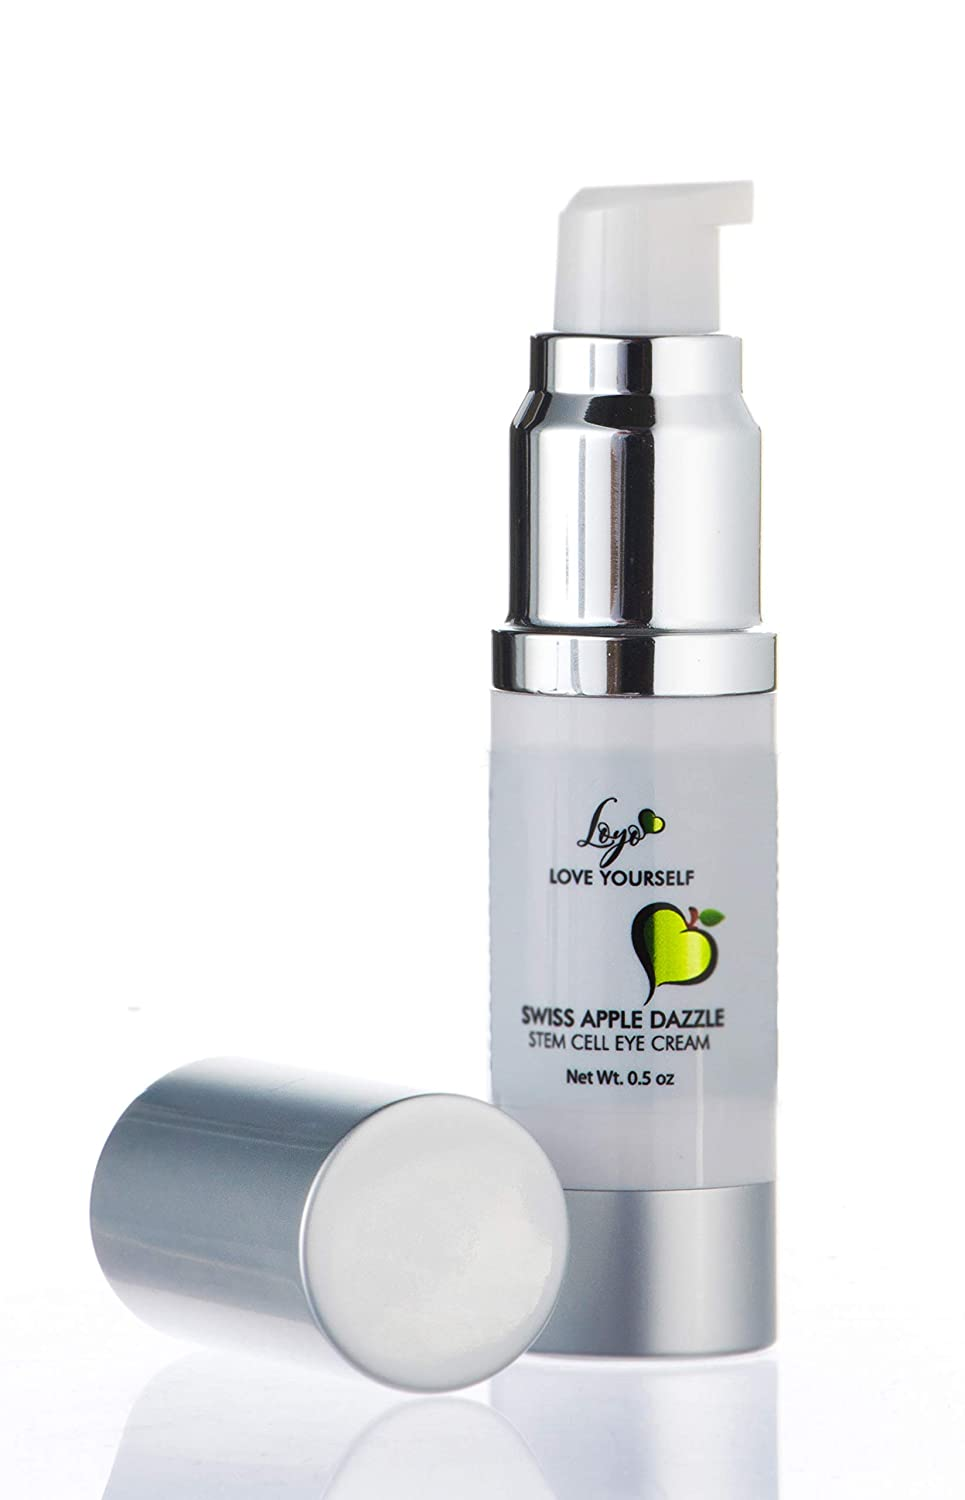 SWISS APPLE STEM CELL EYE CREAM - Anti-aging under eye treatment for wrinkles, fine lines, crows feet, dark circles, bags & puffiness - for men & women - with Malus Domestica, antioxidants & retinol.